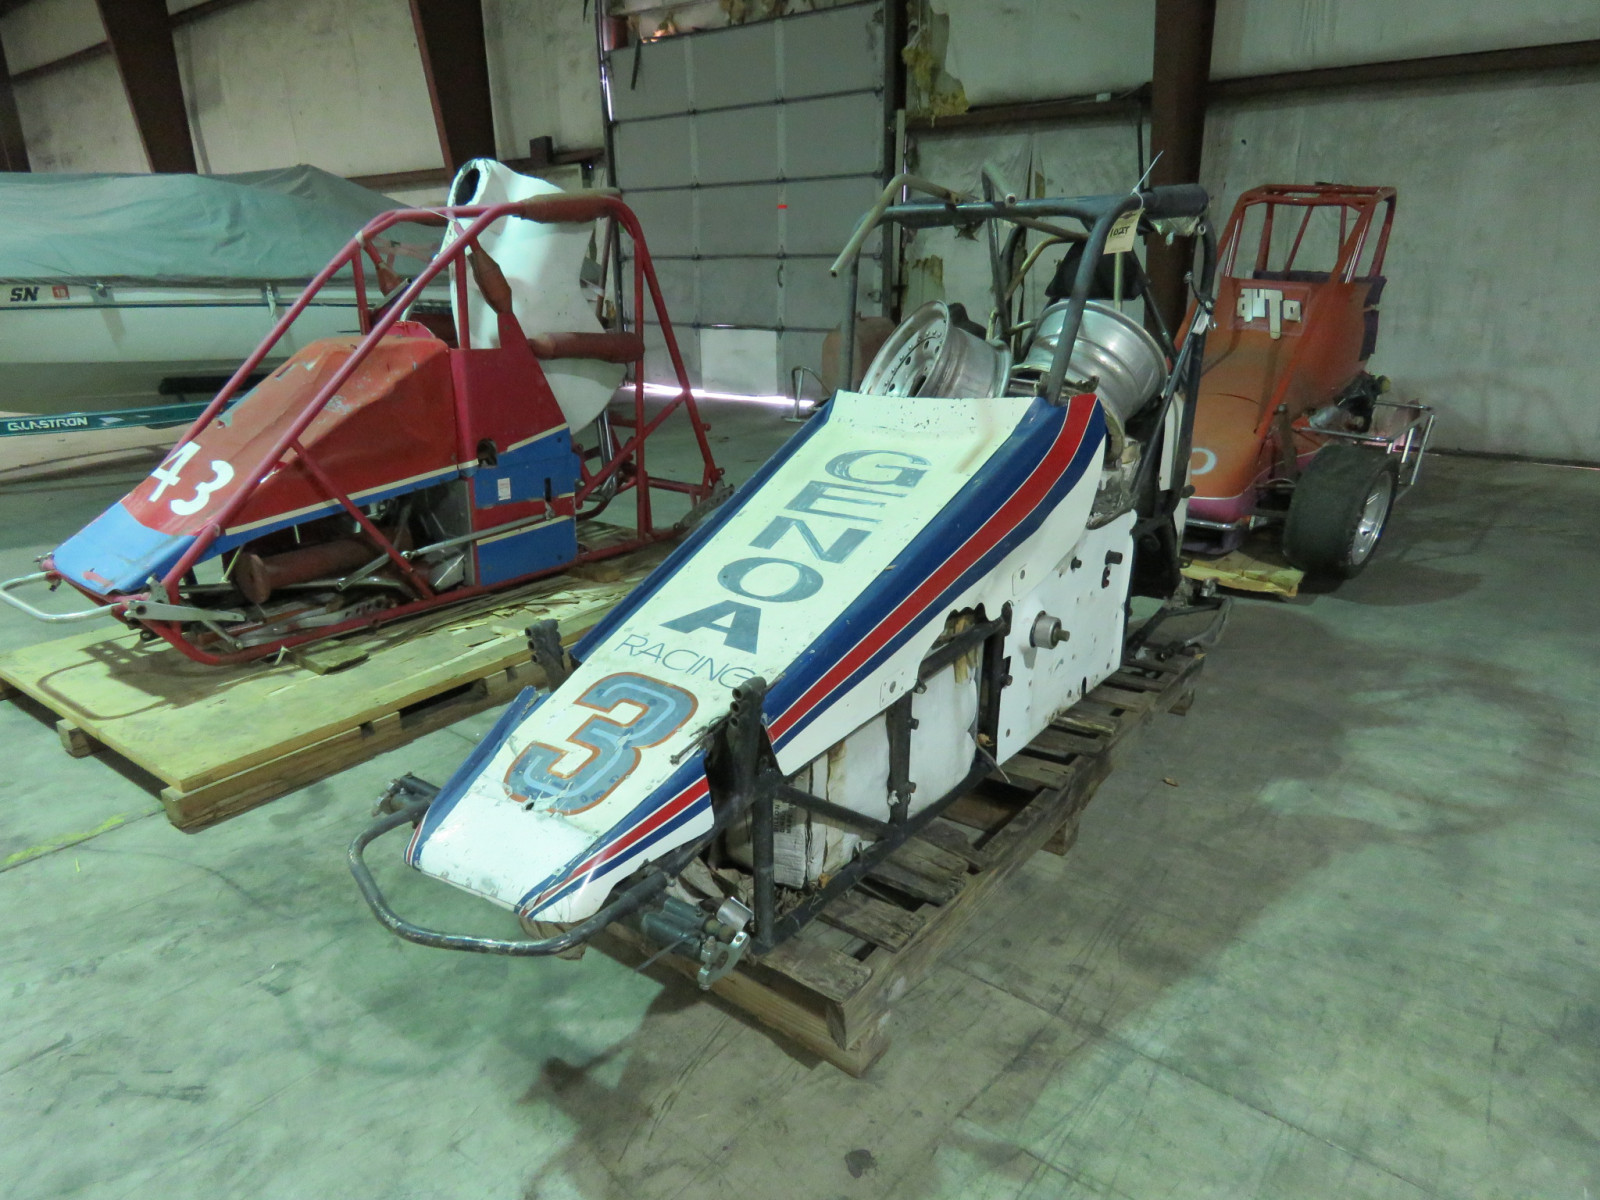 Vintage Edmunds Midget Race Car - Image 1